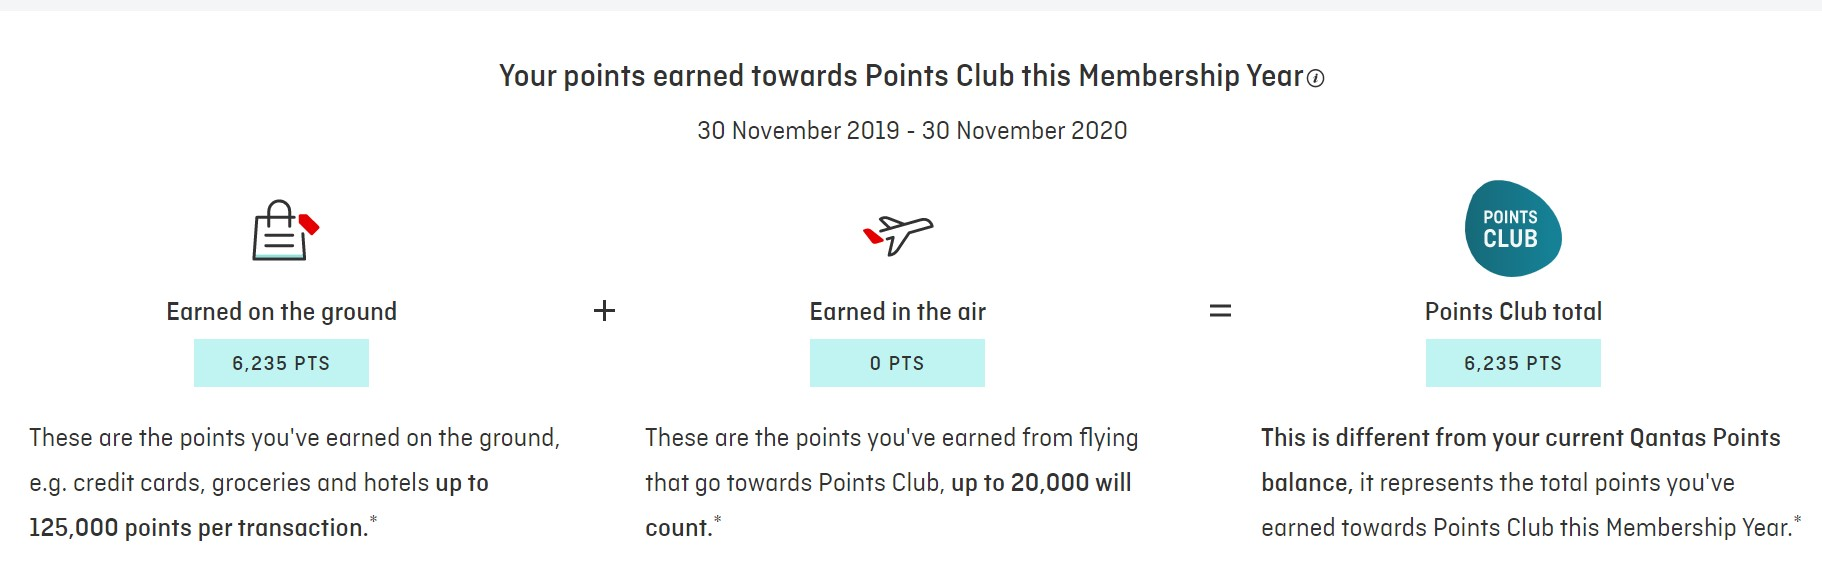 Points Club Summary